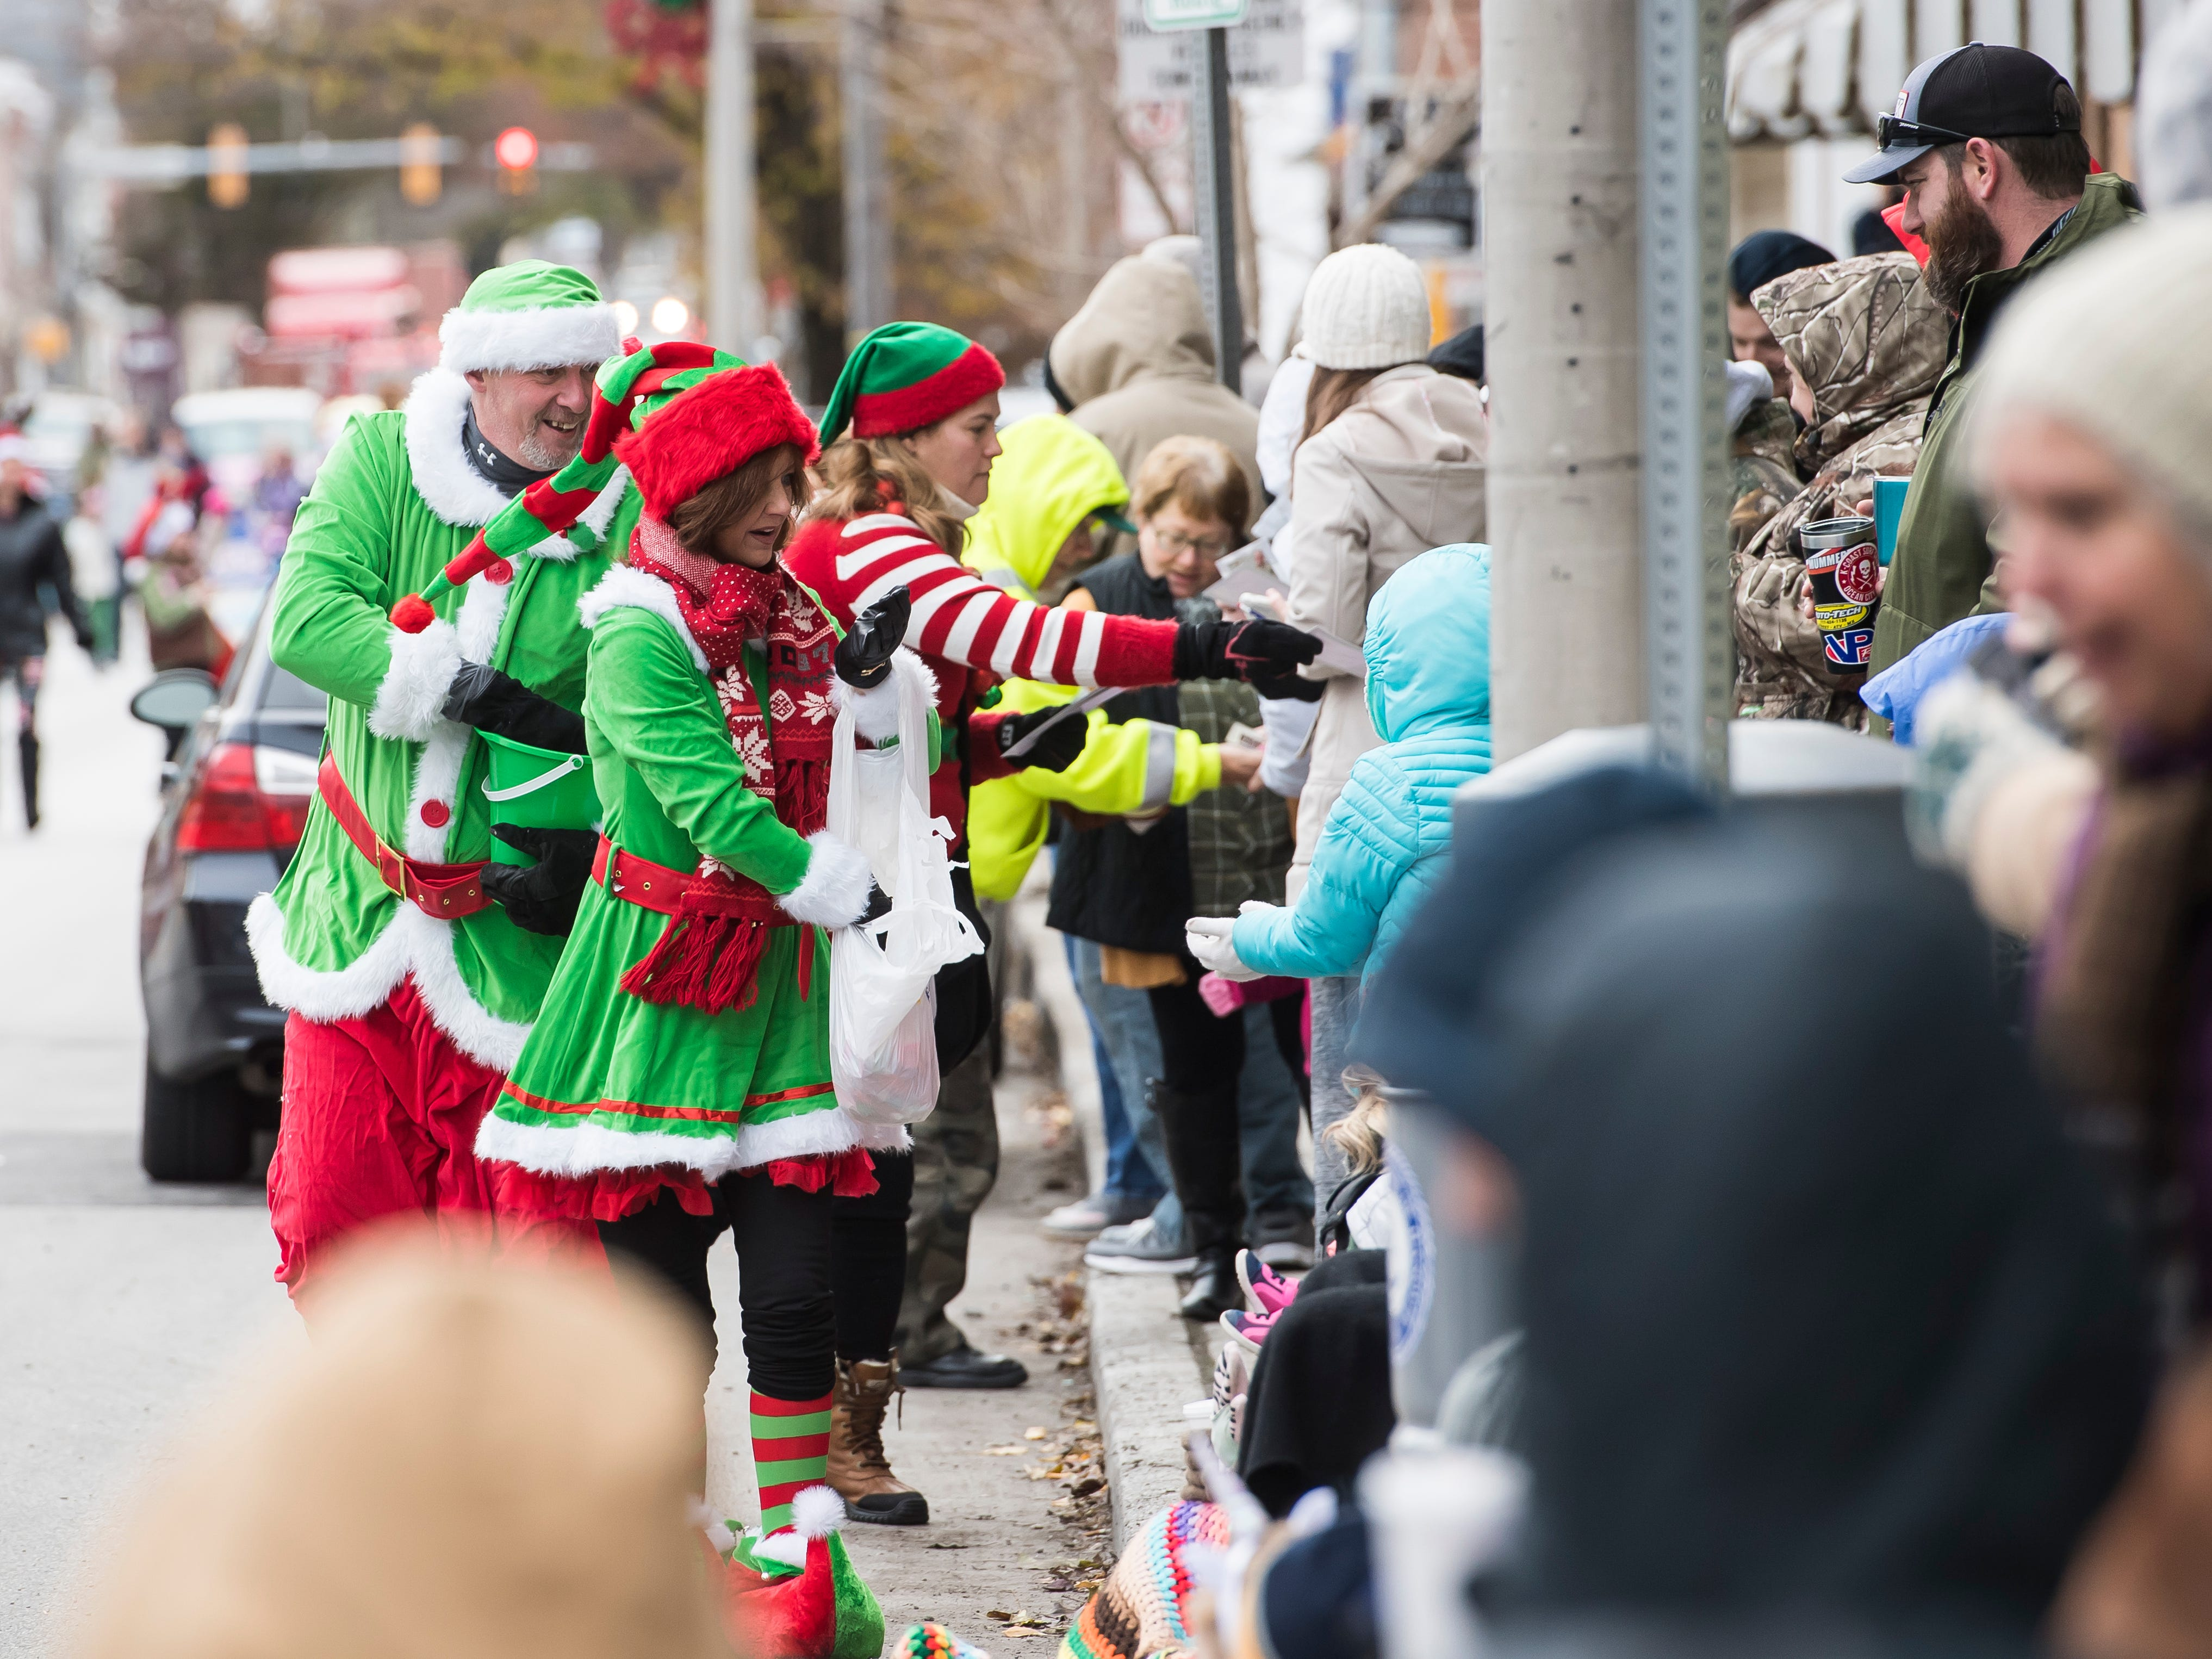 Santa's helpers pass out candy during the annual Hanover Christmas parade on Friday, November, 23, 2018.